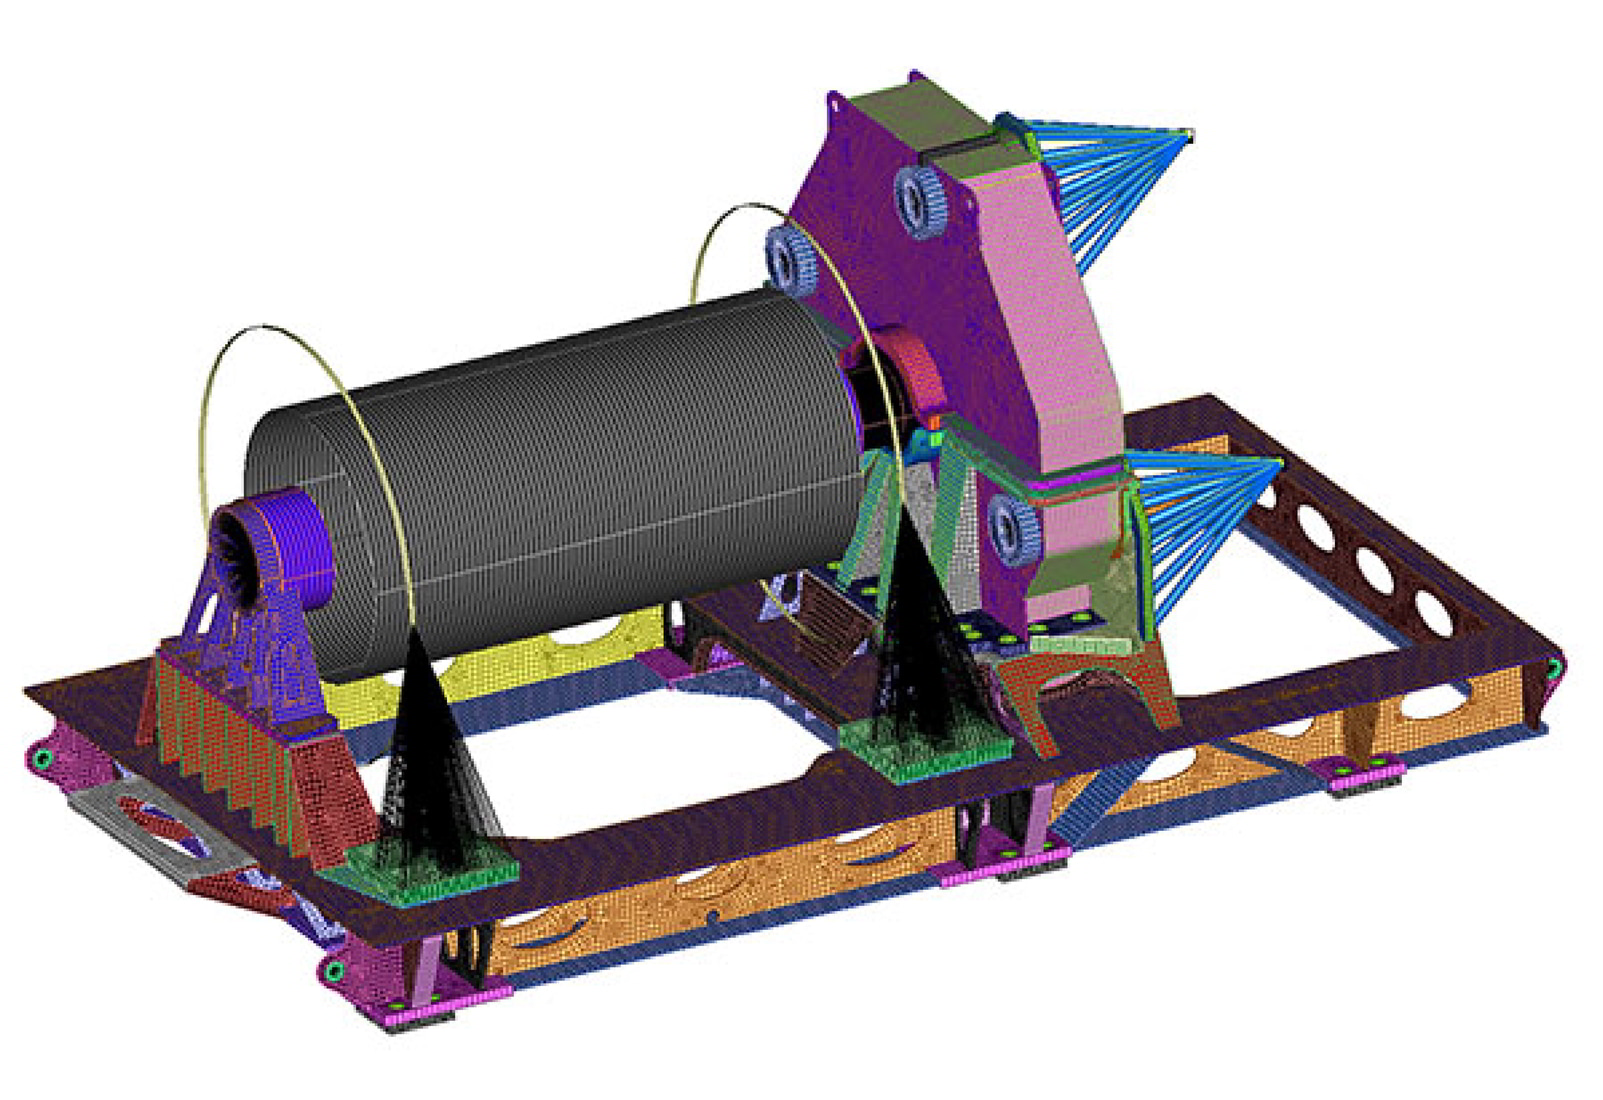 Off-shore oil drilling platform high-speed top drive winch